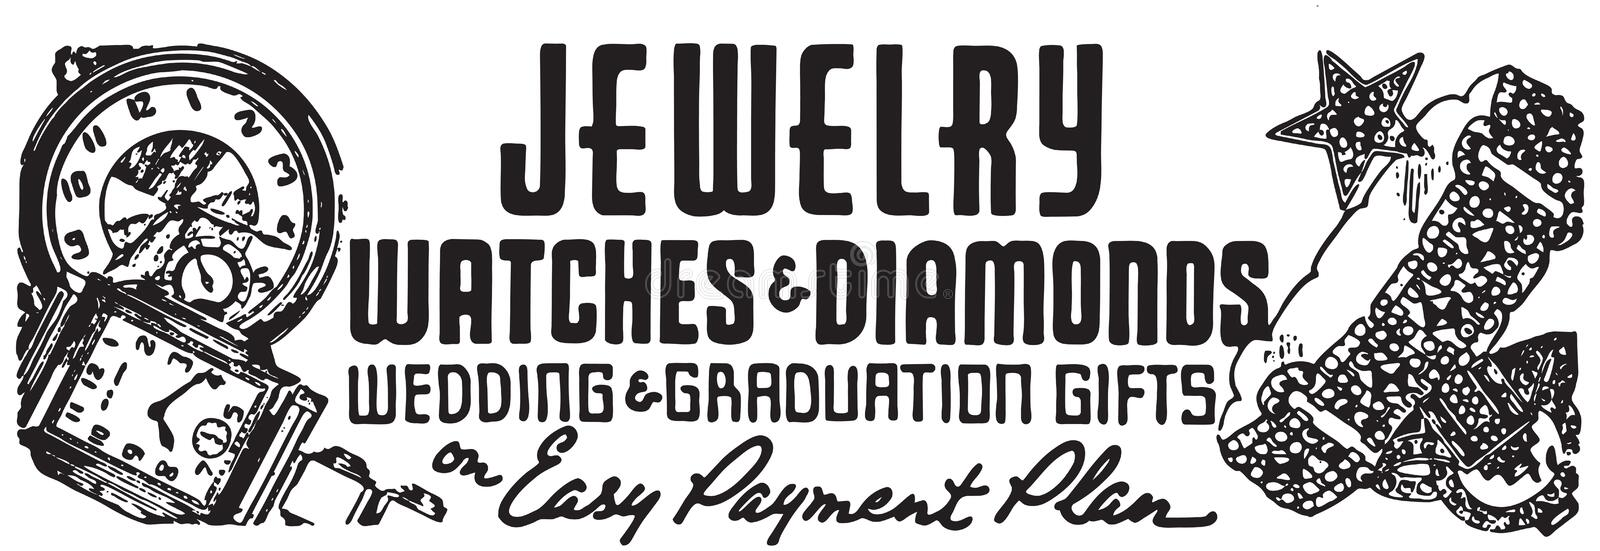 Jewelry Watches And Diamonds. Retro Ad Art Banner vector illustration